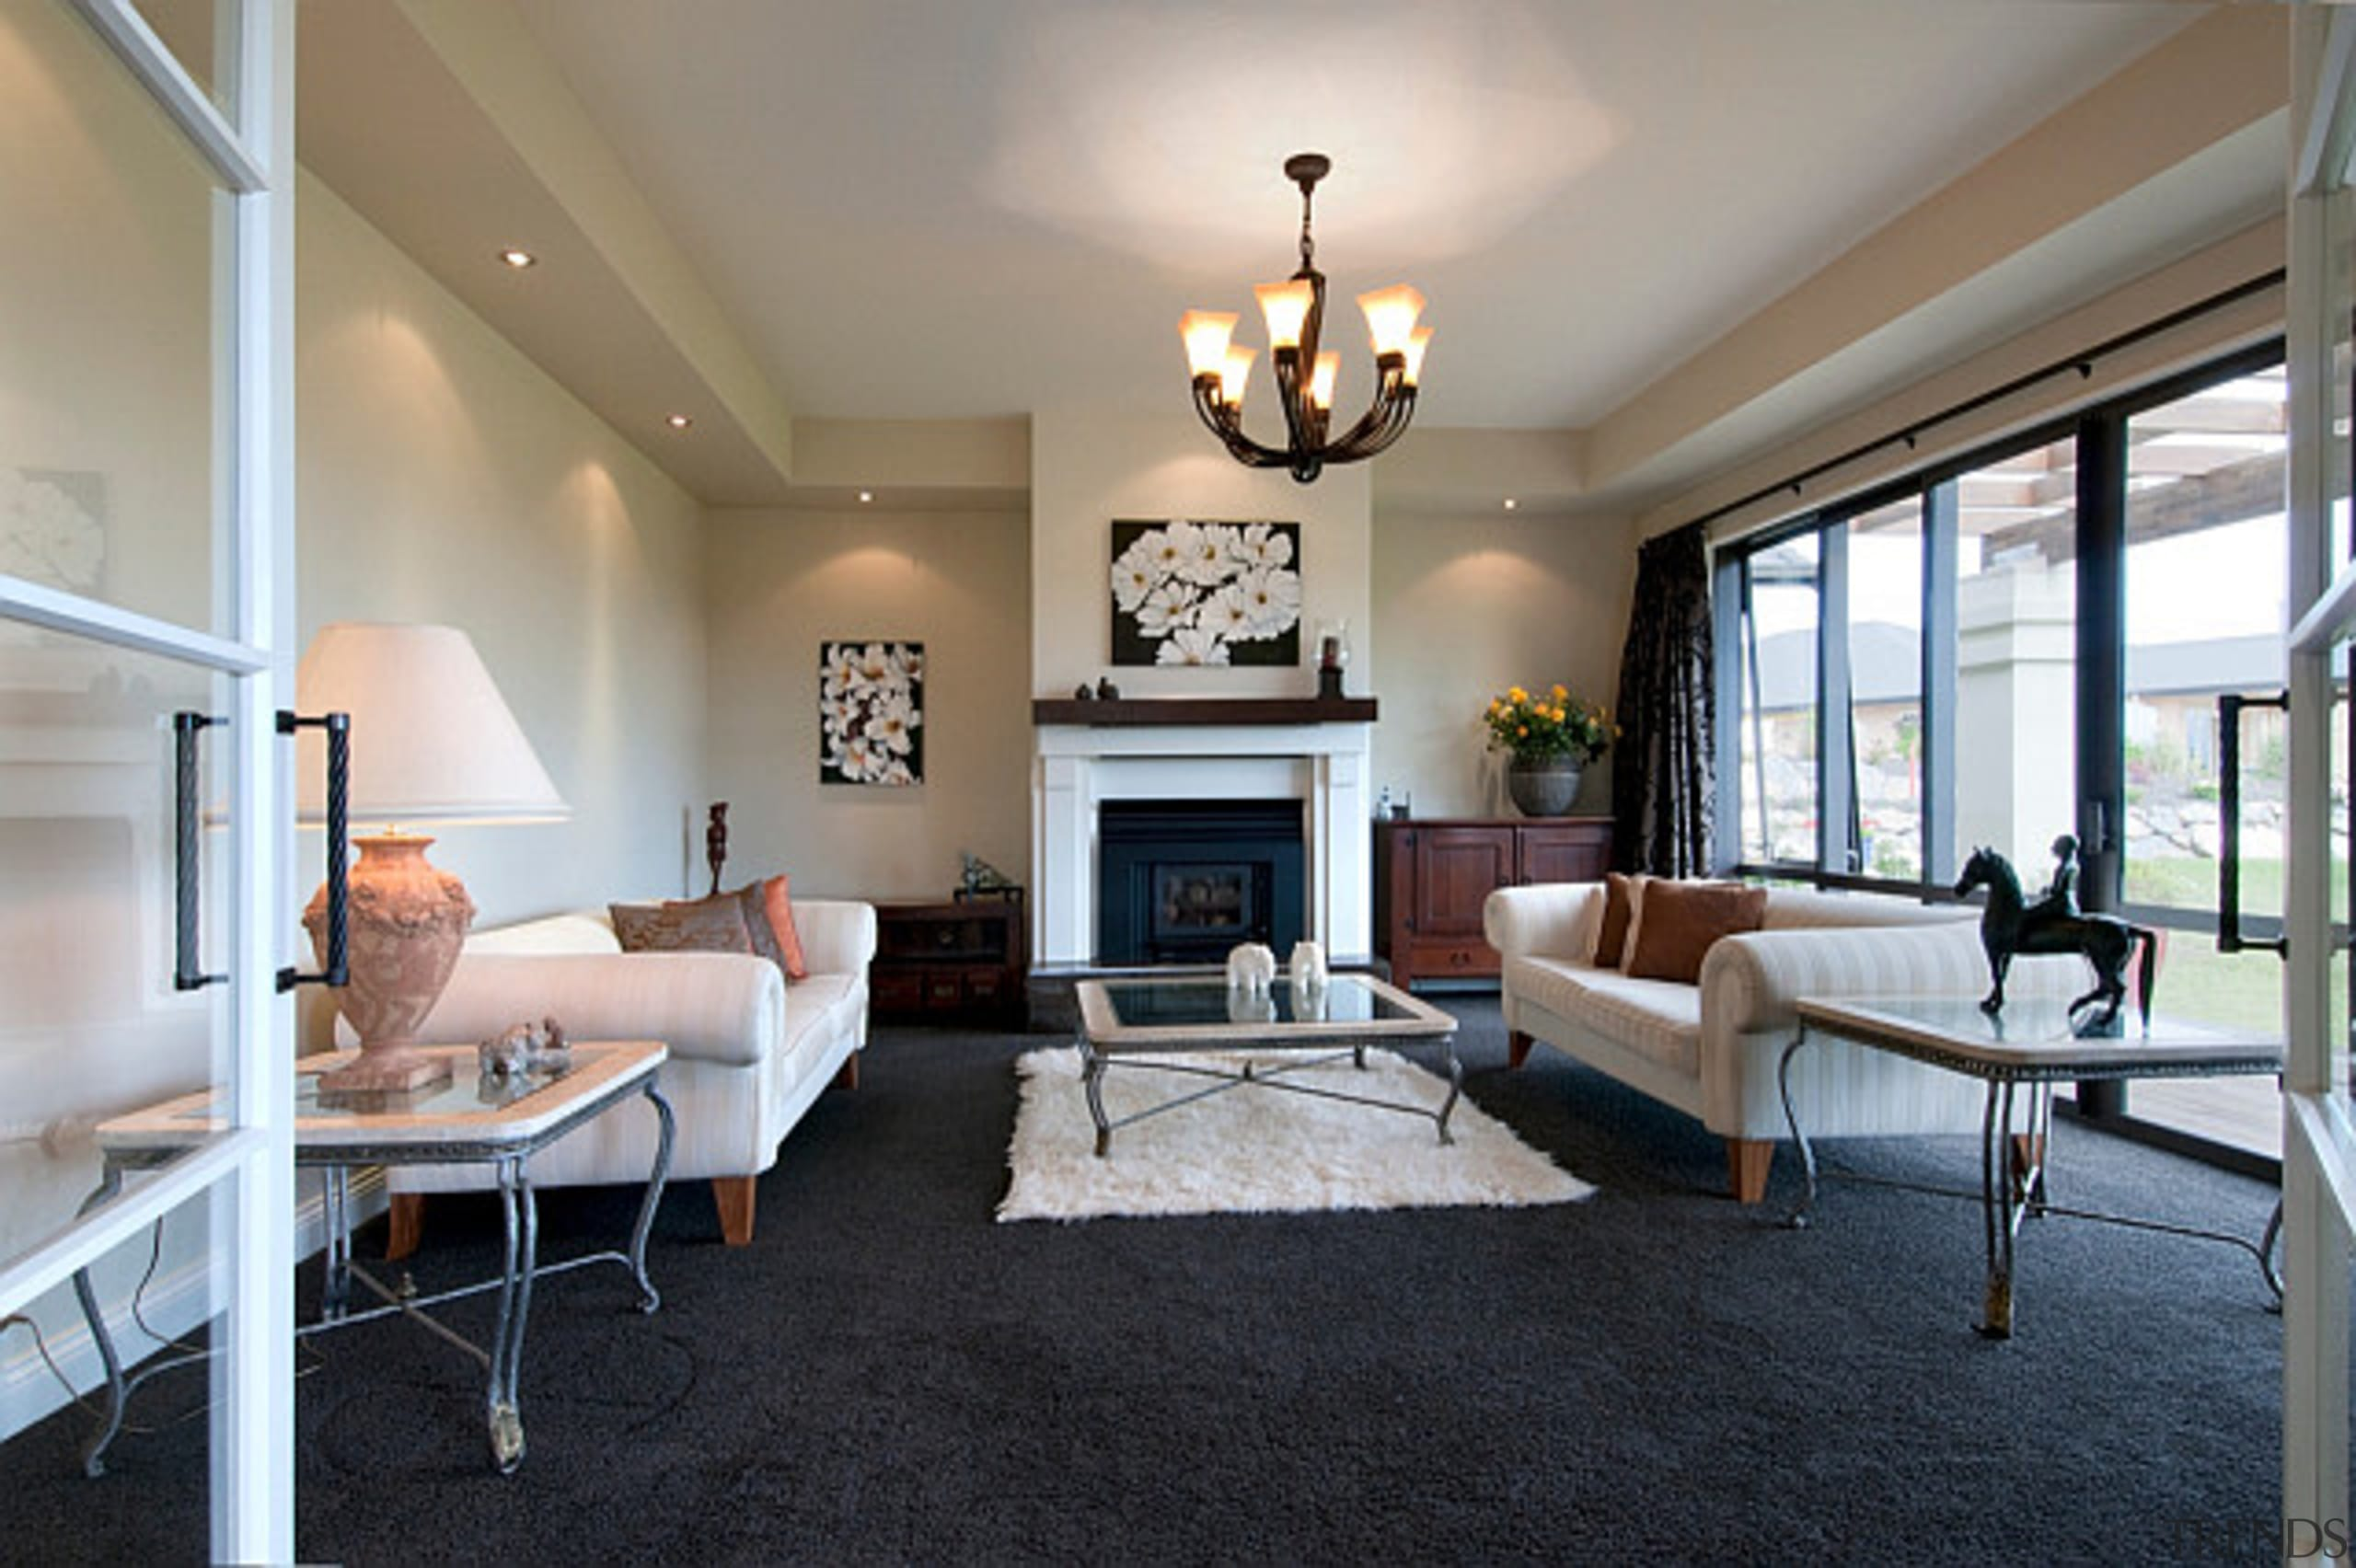 Grand style in this home designed and built ceiling, floor, flooring, home, house, interior design, living room, property, real estate, room, gray, black